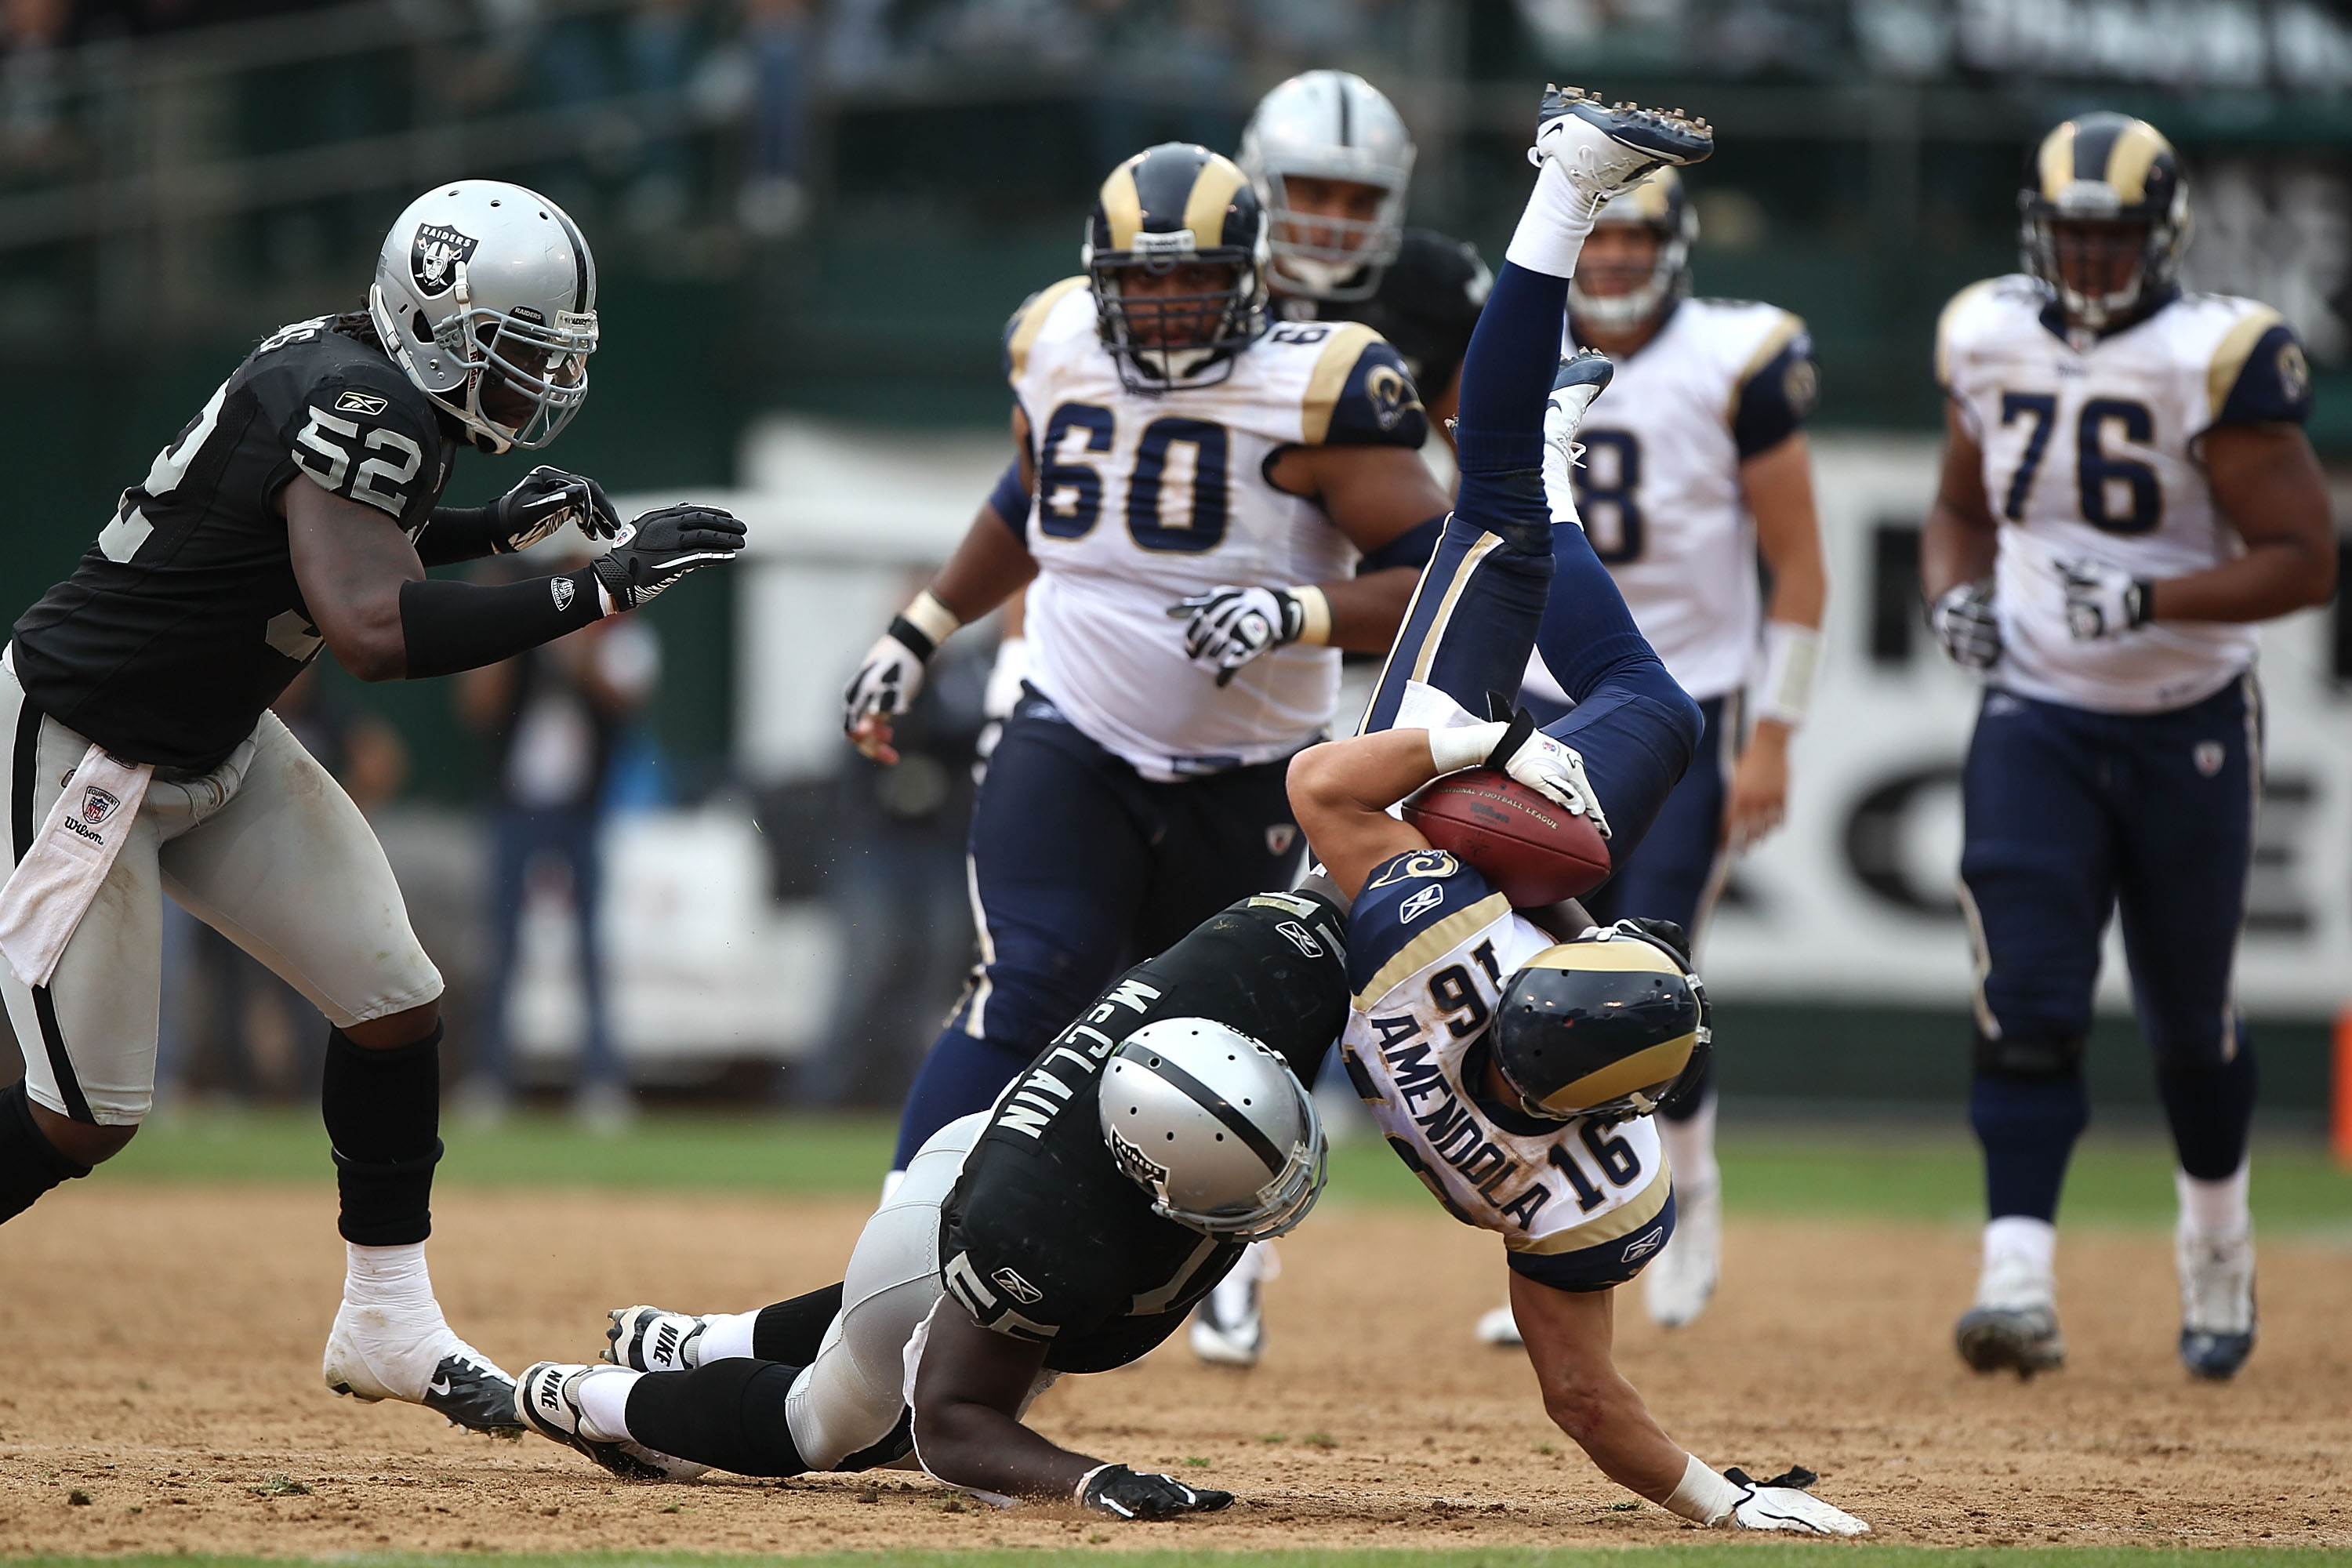 OAKLAND, CA - SEPTEMBER 19:  Danny Amendola #16 of the St. Louis Rams is tackled by Rolando McClain #51 of the Oakland Raiders during an NFL game at Oakland-Alameda County Coliseum on September 19, 2010 in Oakland, California.  (Photo by Jed Jacobsohn/Get